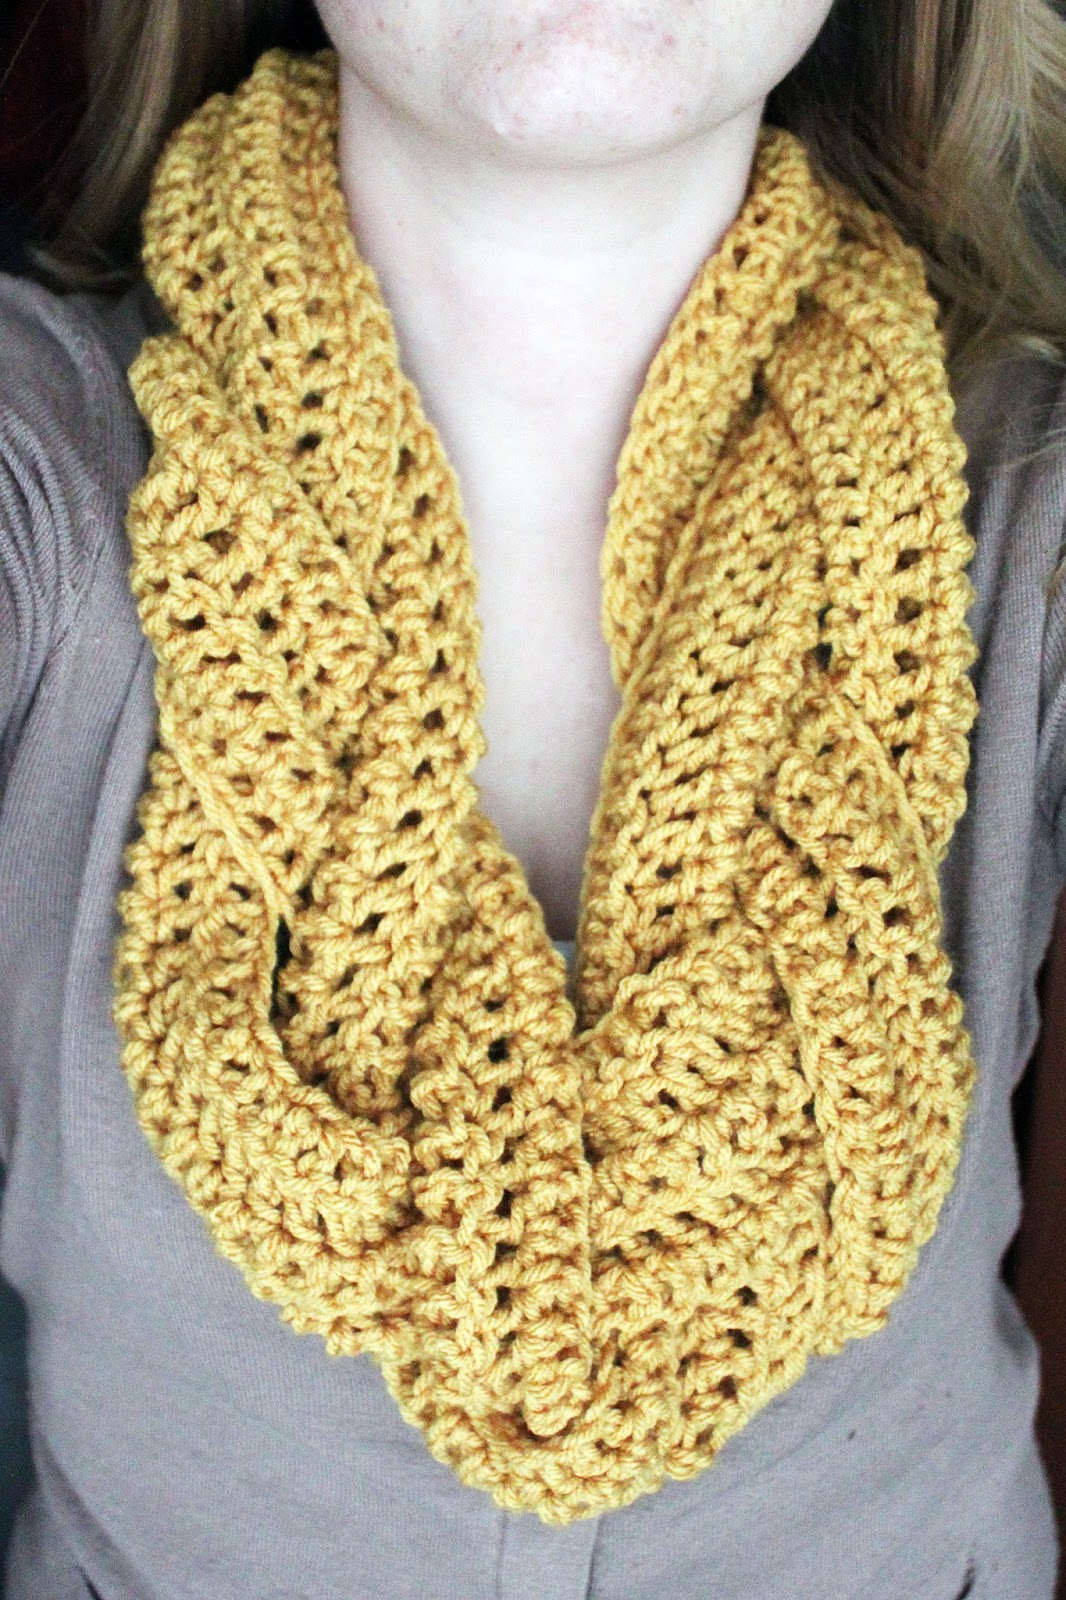 Crochet Scarf Pattern With Pictures : Rookie Crafter: Braided Crocheted Scarf